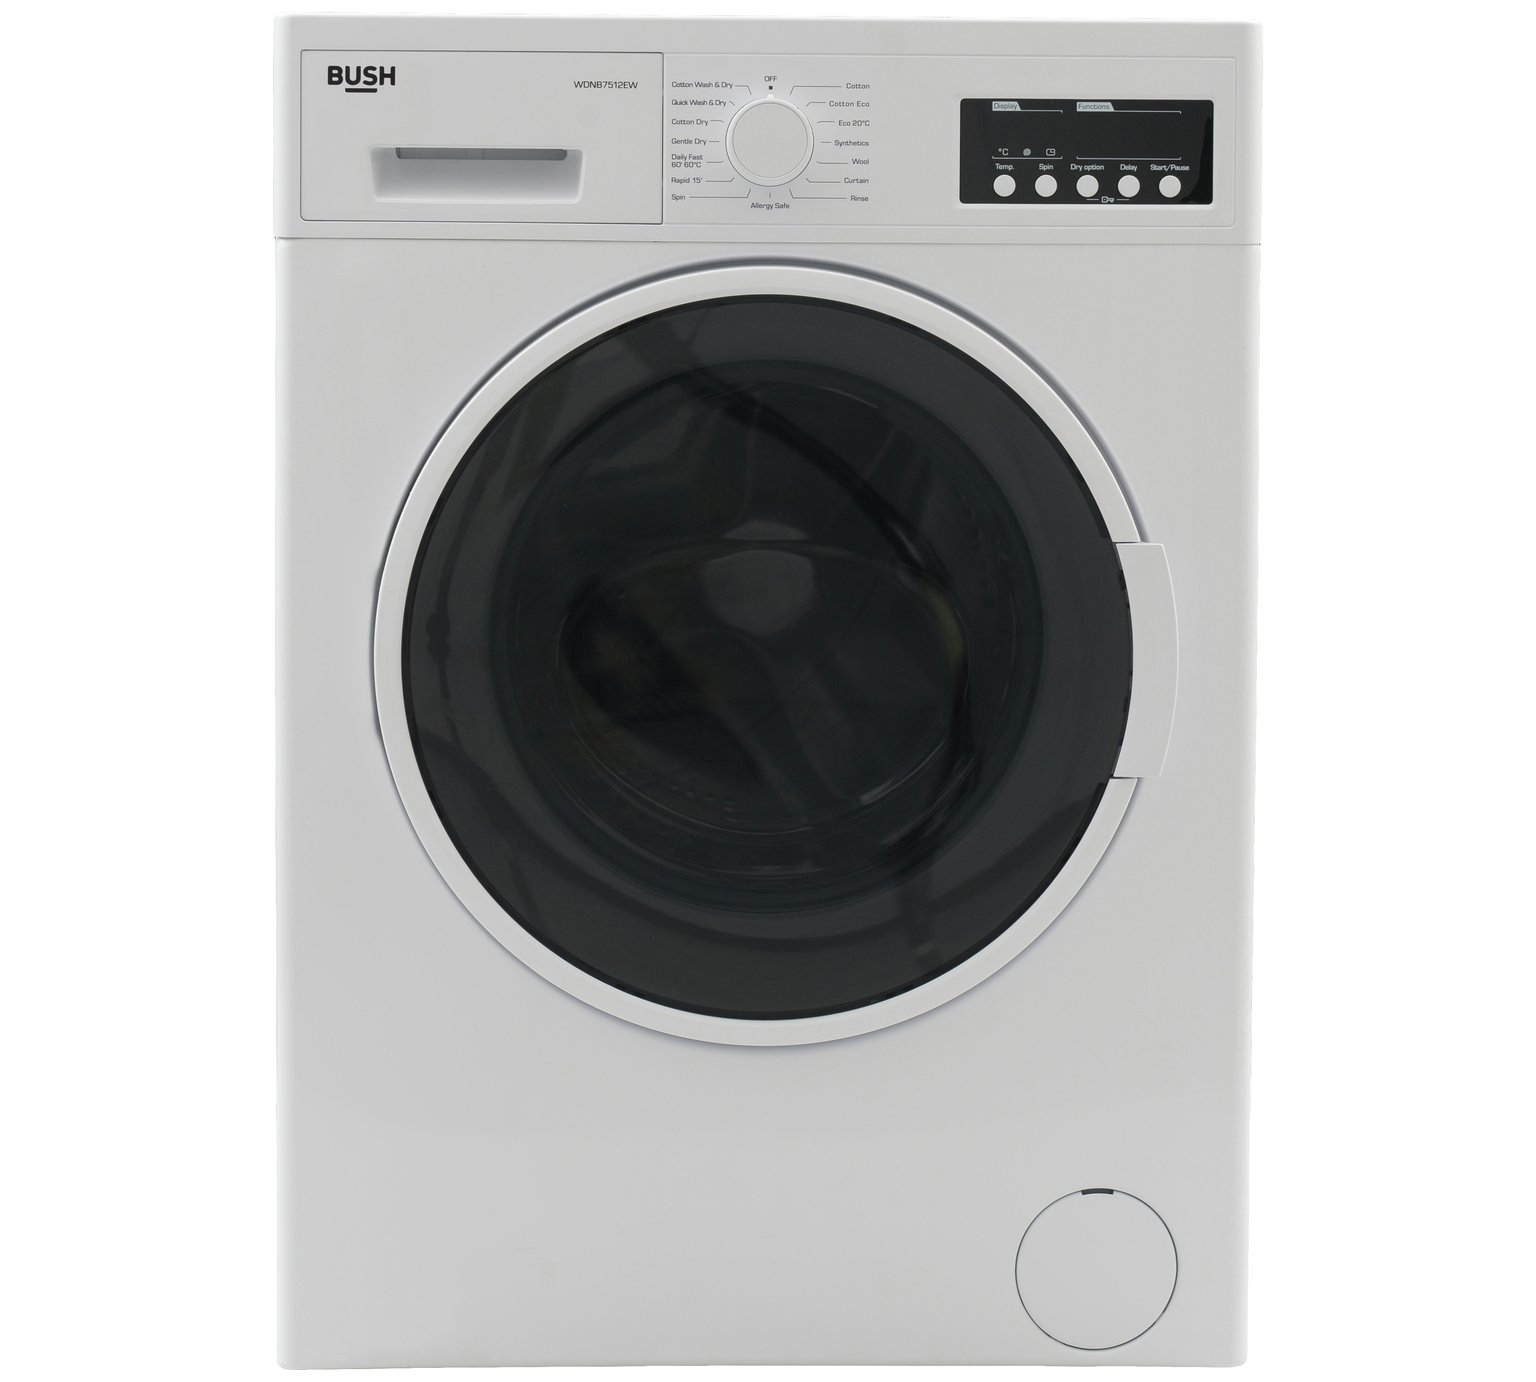 Bush WDNB7512EW 7KG / 5KG 1200 Spin Washer Dryer - White by Bush 804/4233